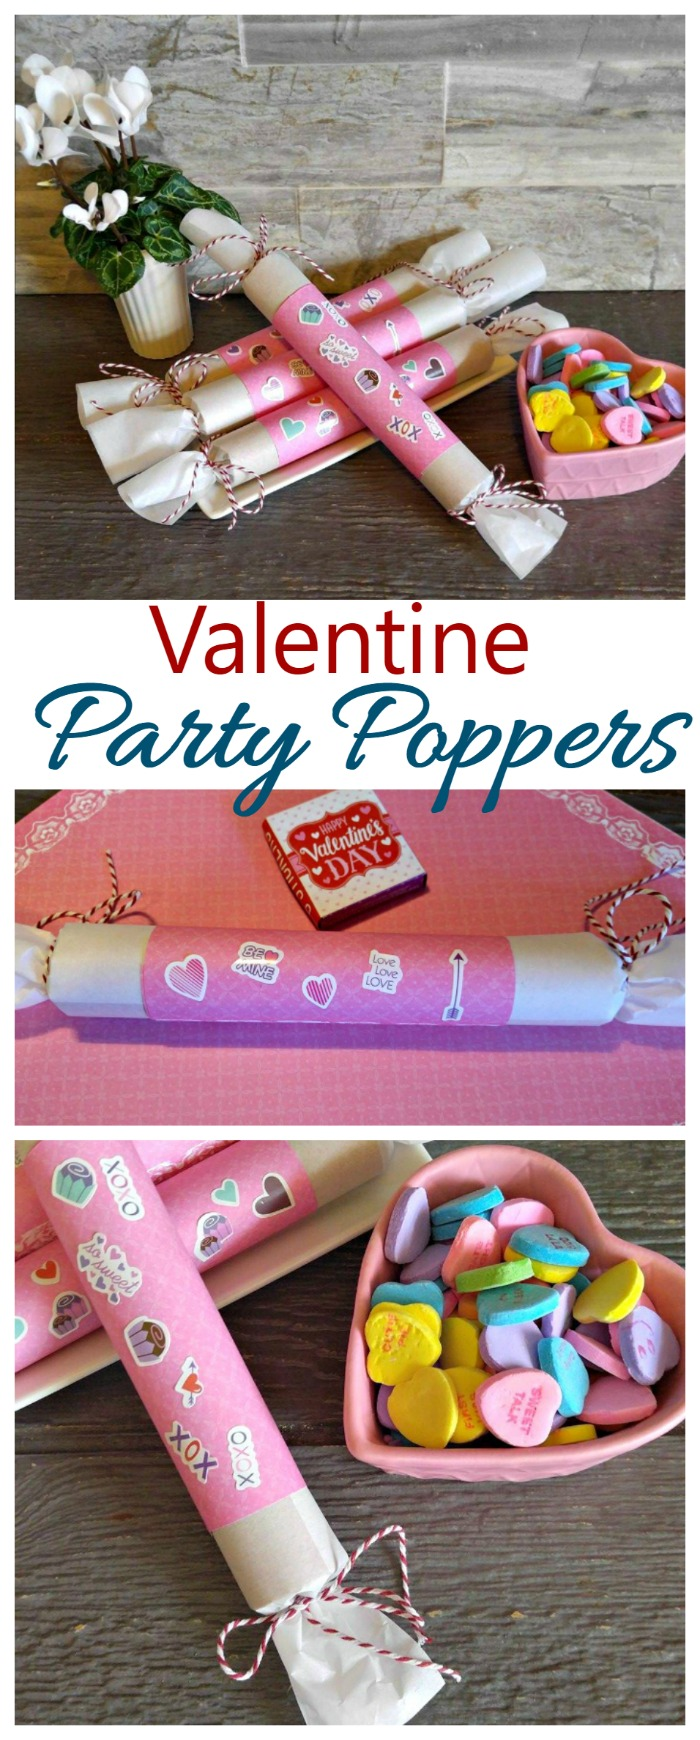 These Valentine Party Poppers are as much fun to make as they are to pop. Your kids will love to help with this easy project.